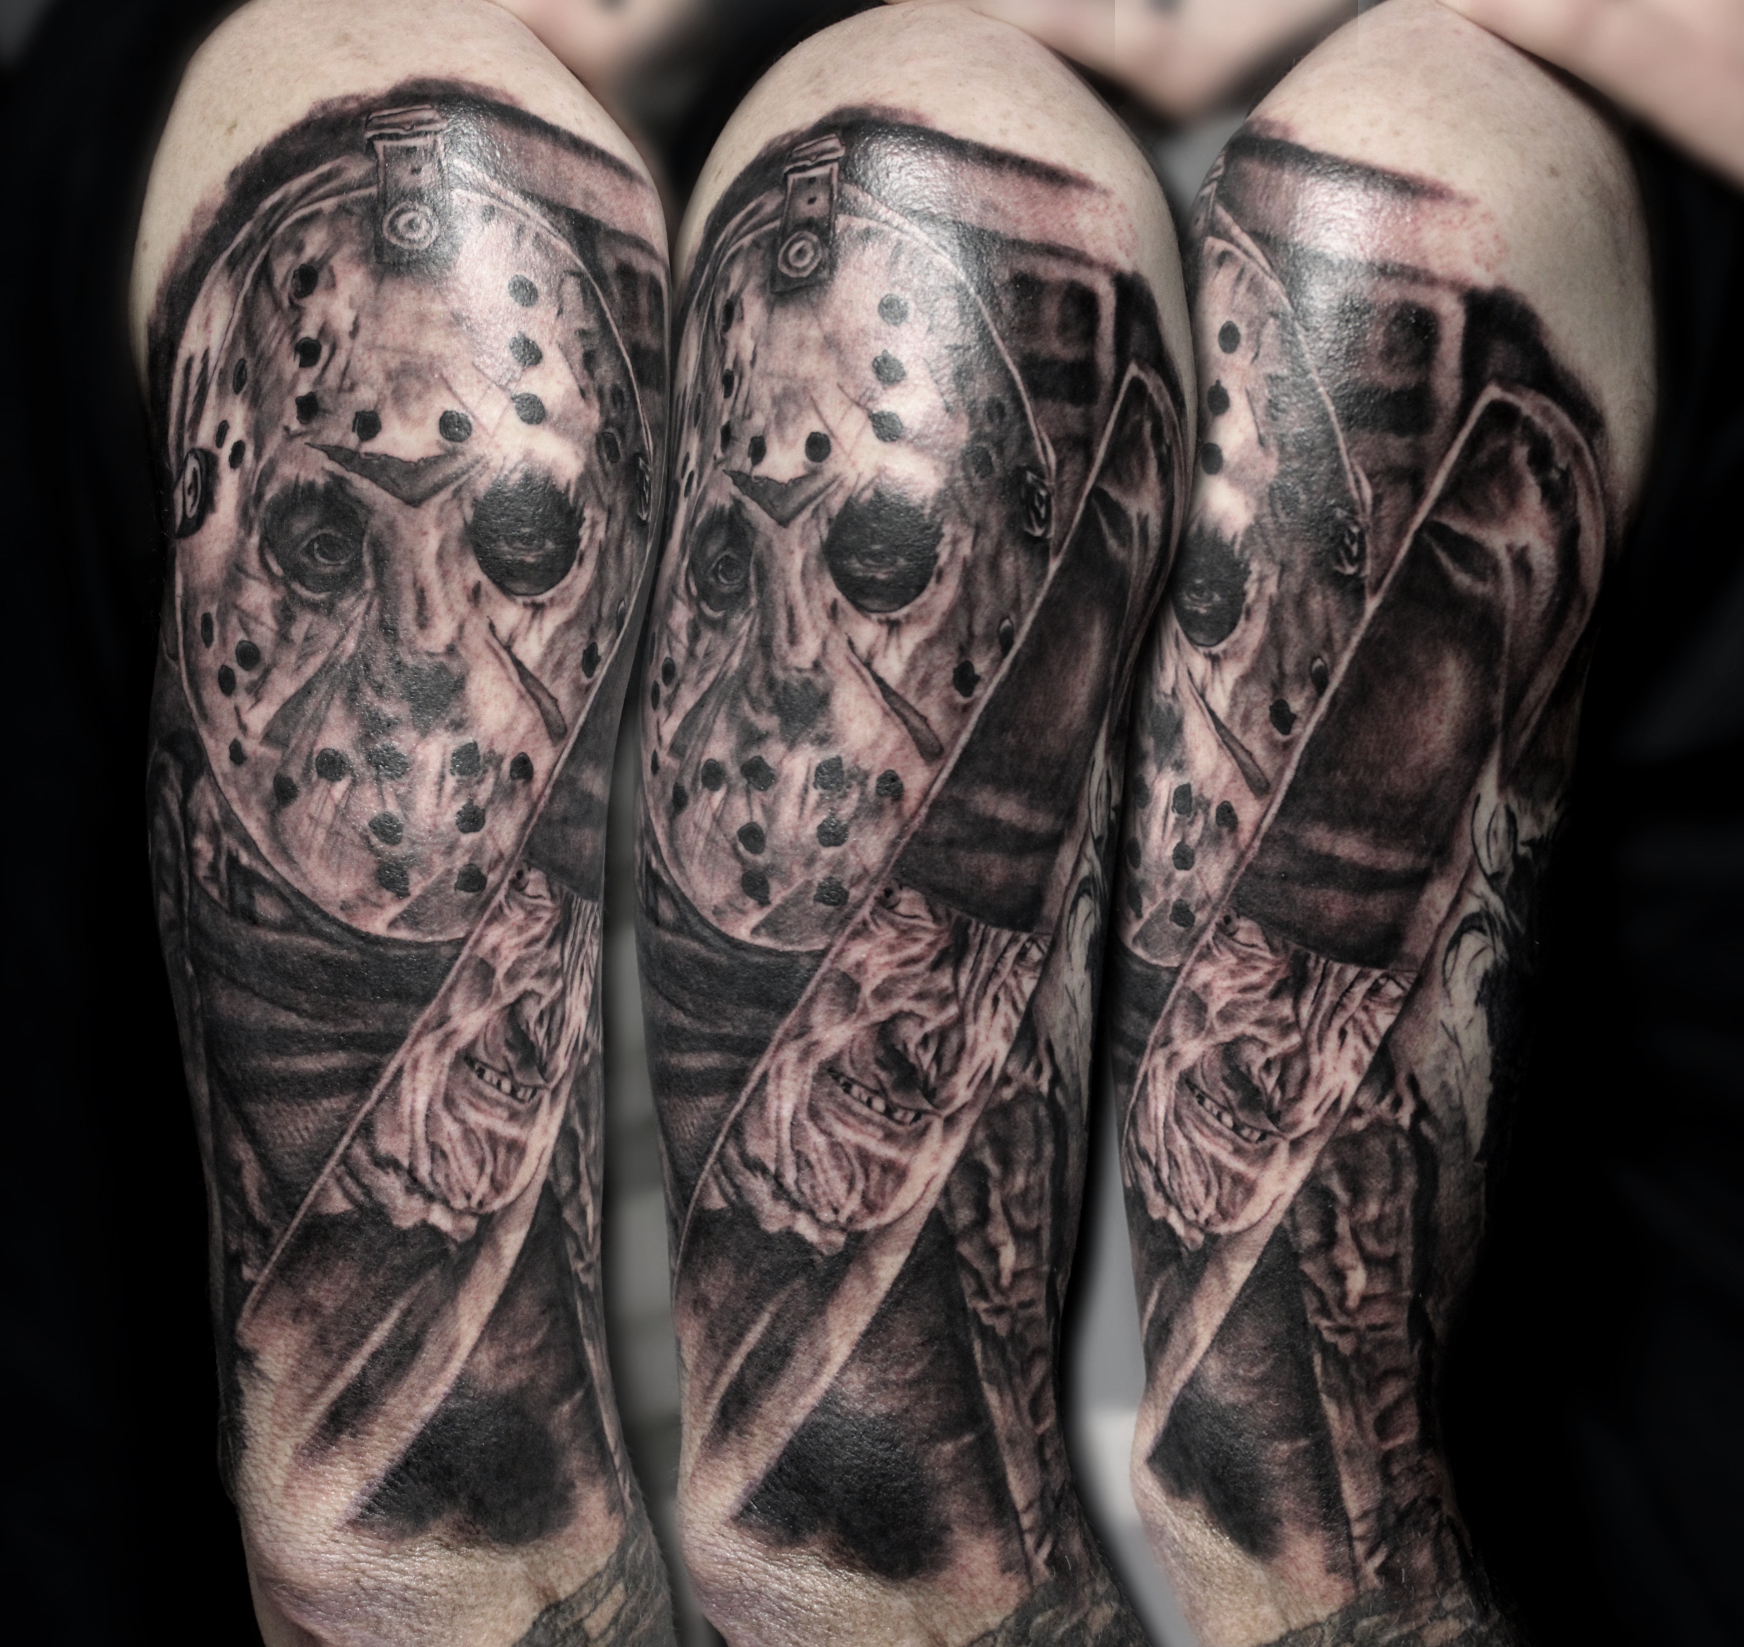 Daryl Novak Tattoo 2019 Okanagan Tattoo Show & Brewfest Artist